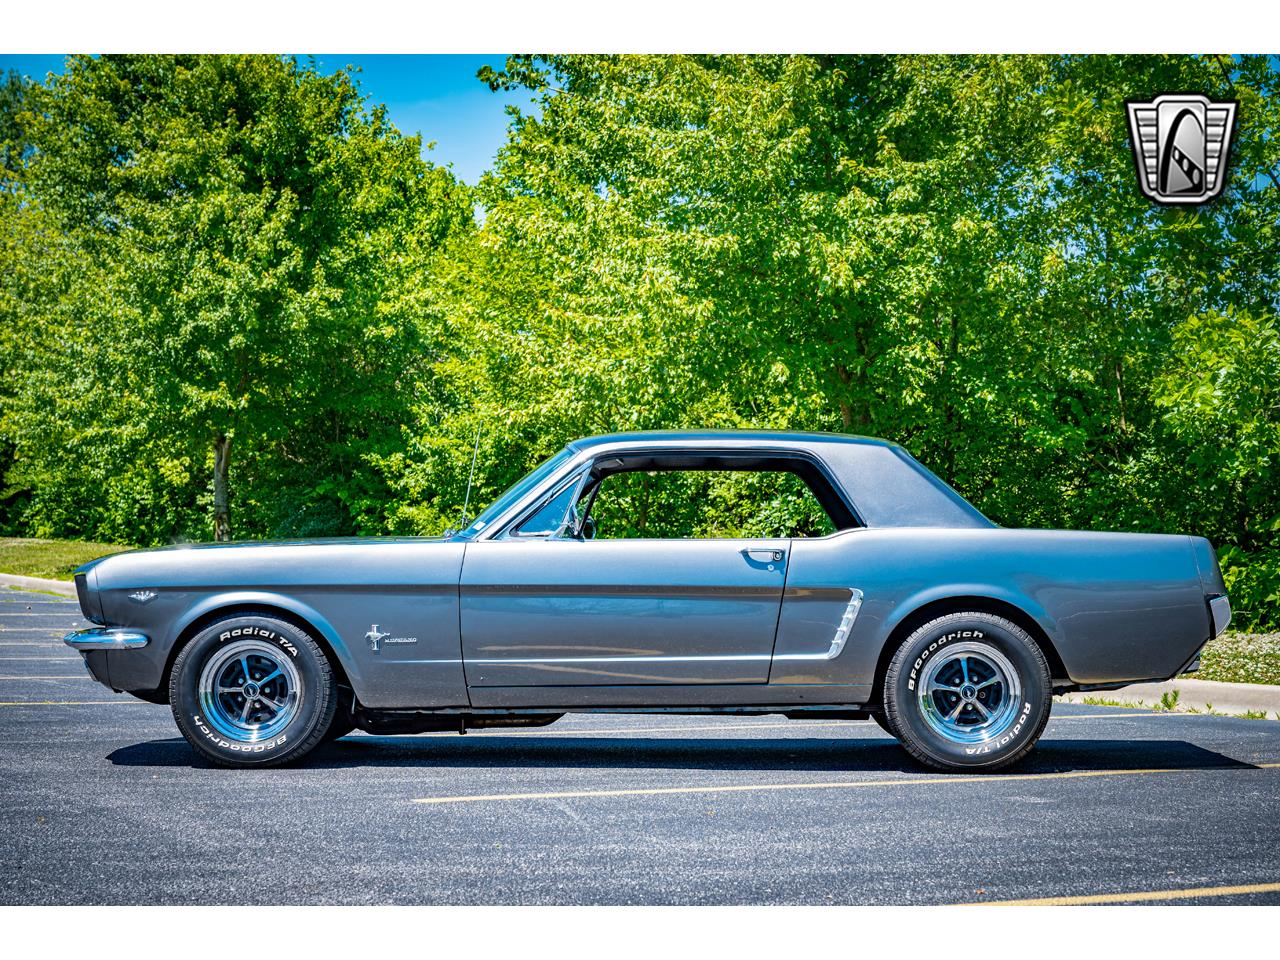 Ford Mustang Pony pack v8 289 1965 prix tout compris 1965